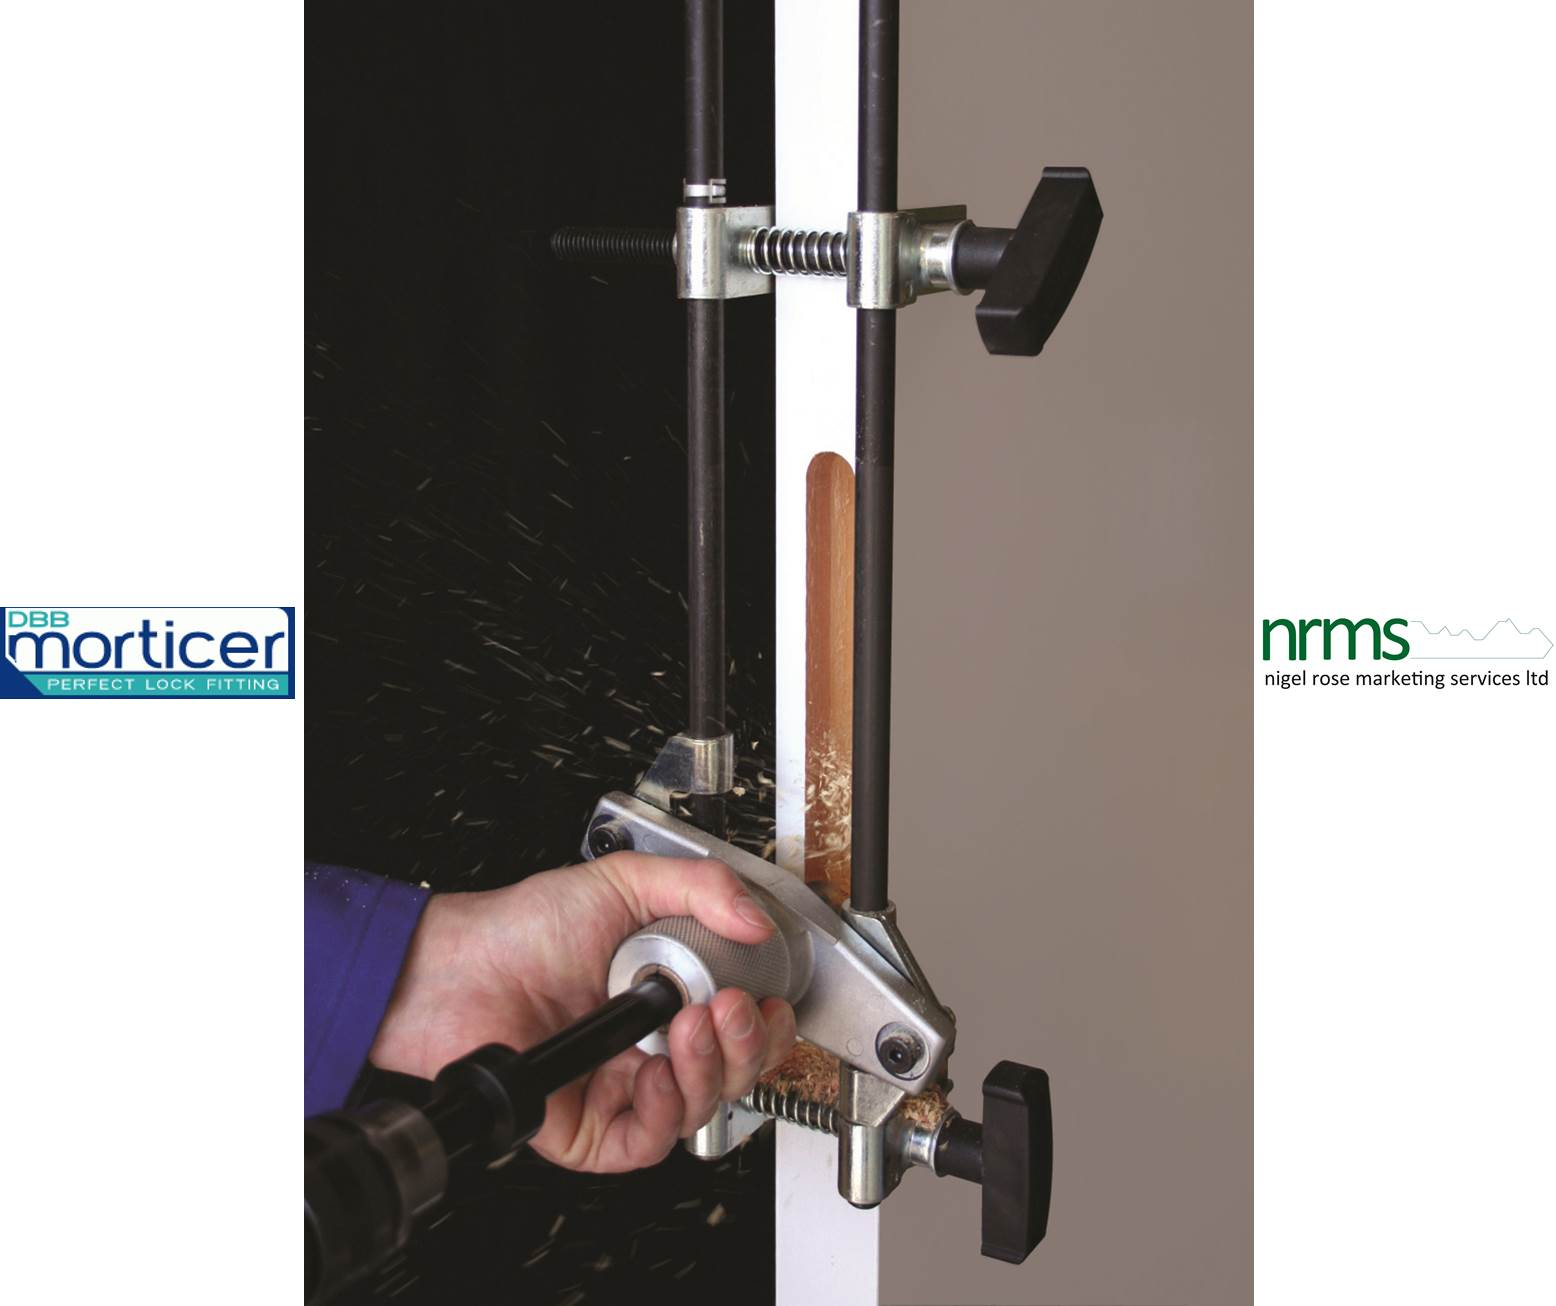 Dbb Morticer Kit Produces Perfect Recess Every Time